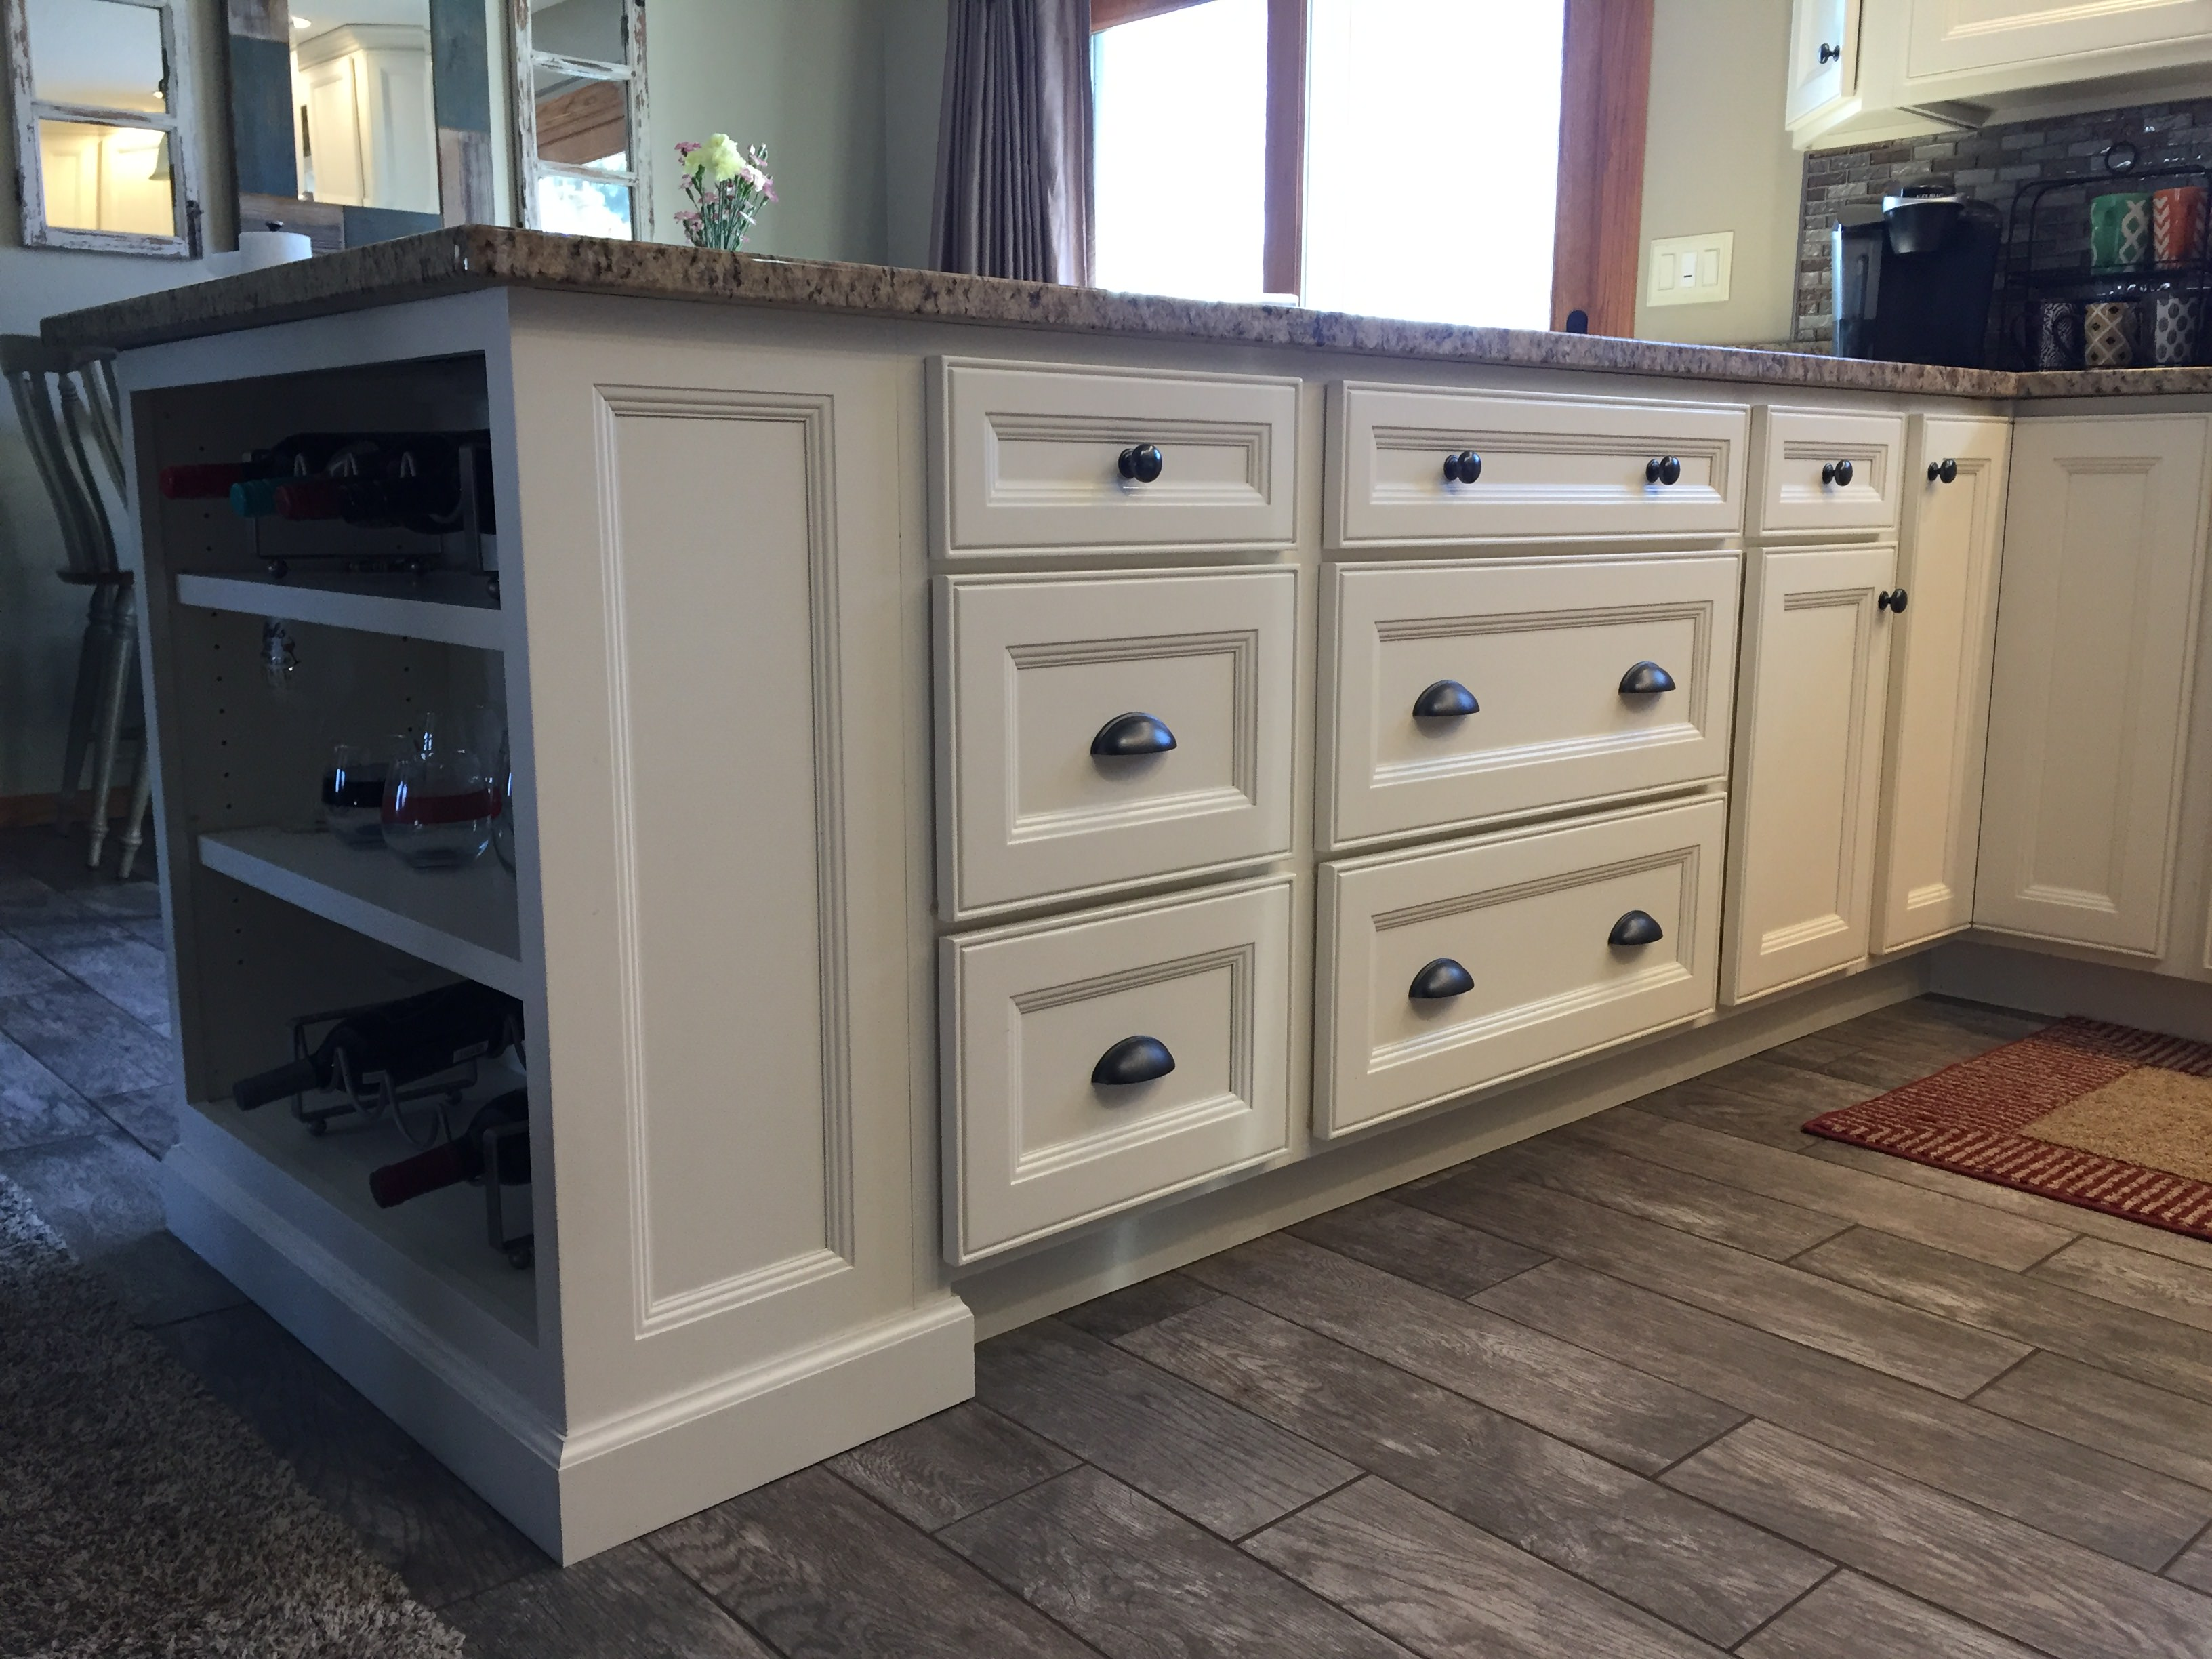 Kitchen And Bath Design Quad Cities Timberline Cabinetry Design Custom Kitchen Cabinets Solid Wood